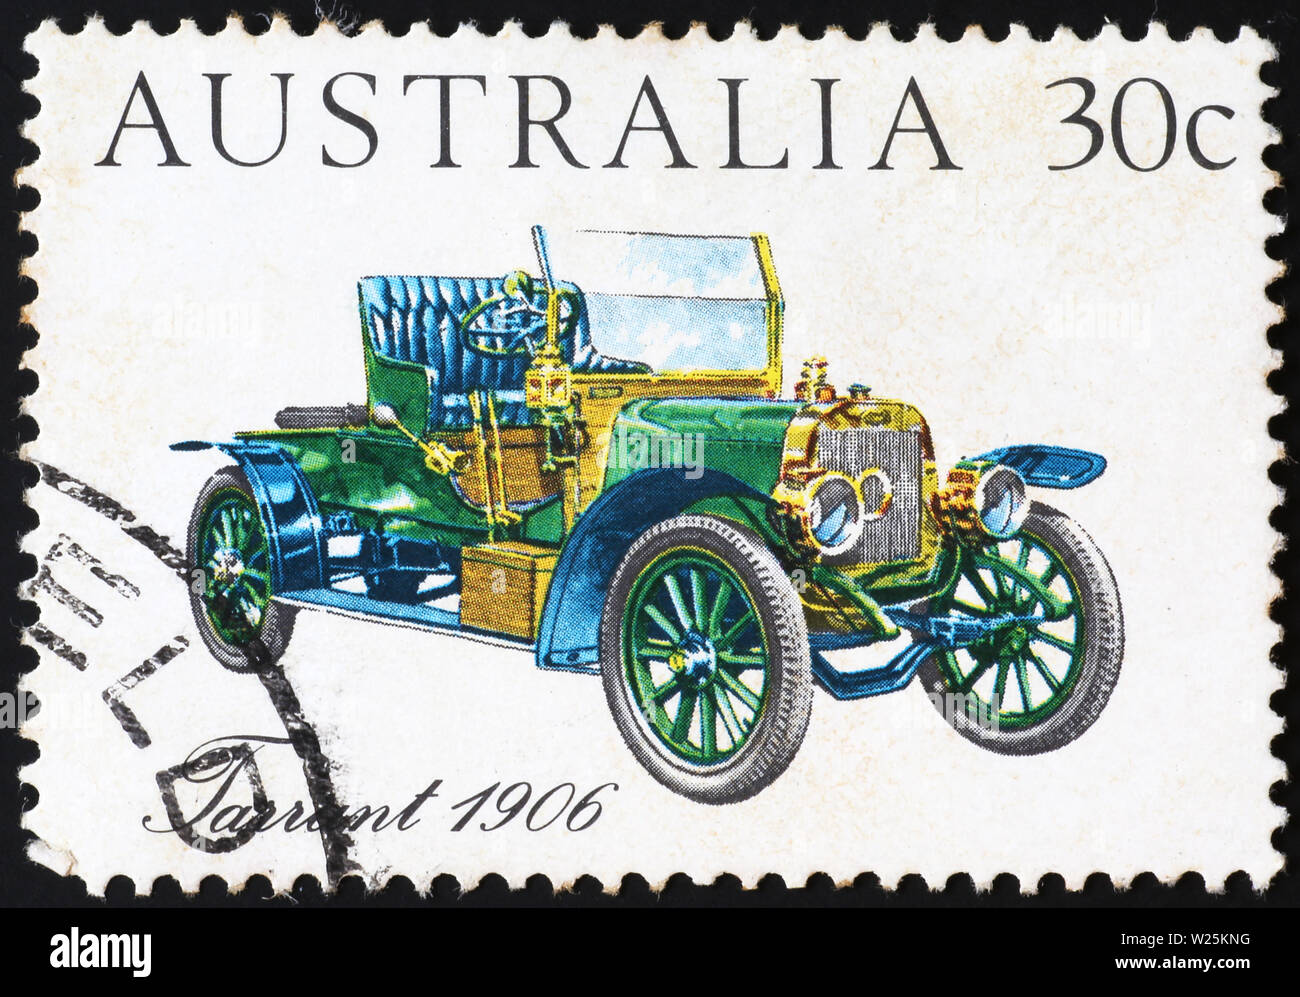 Ancient car of 1906 on australian postage stamp - Stock Image